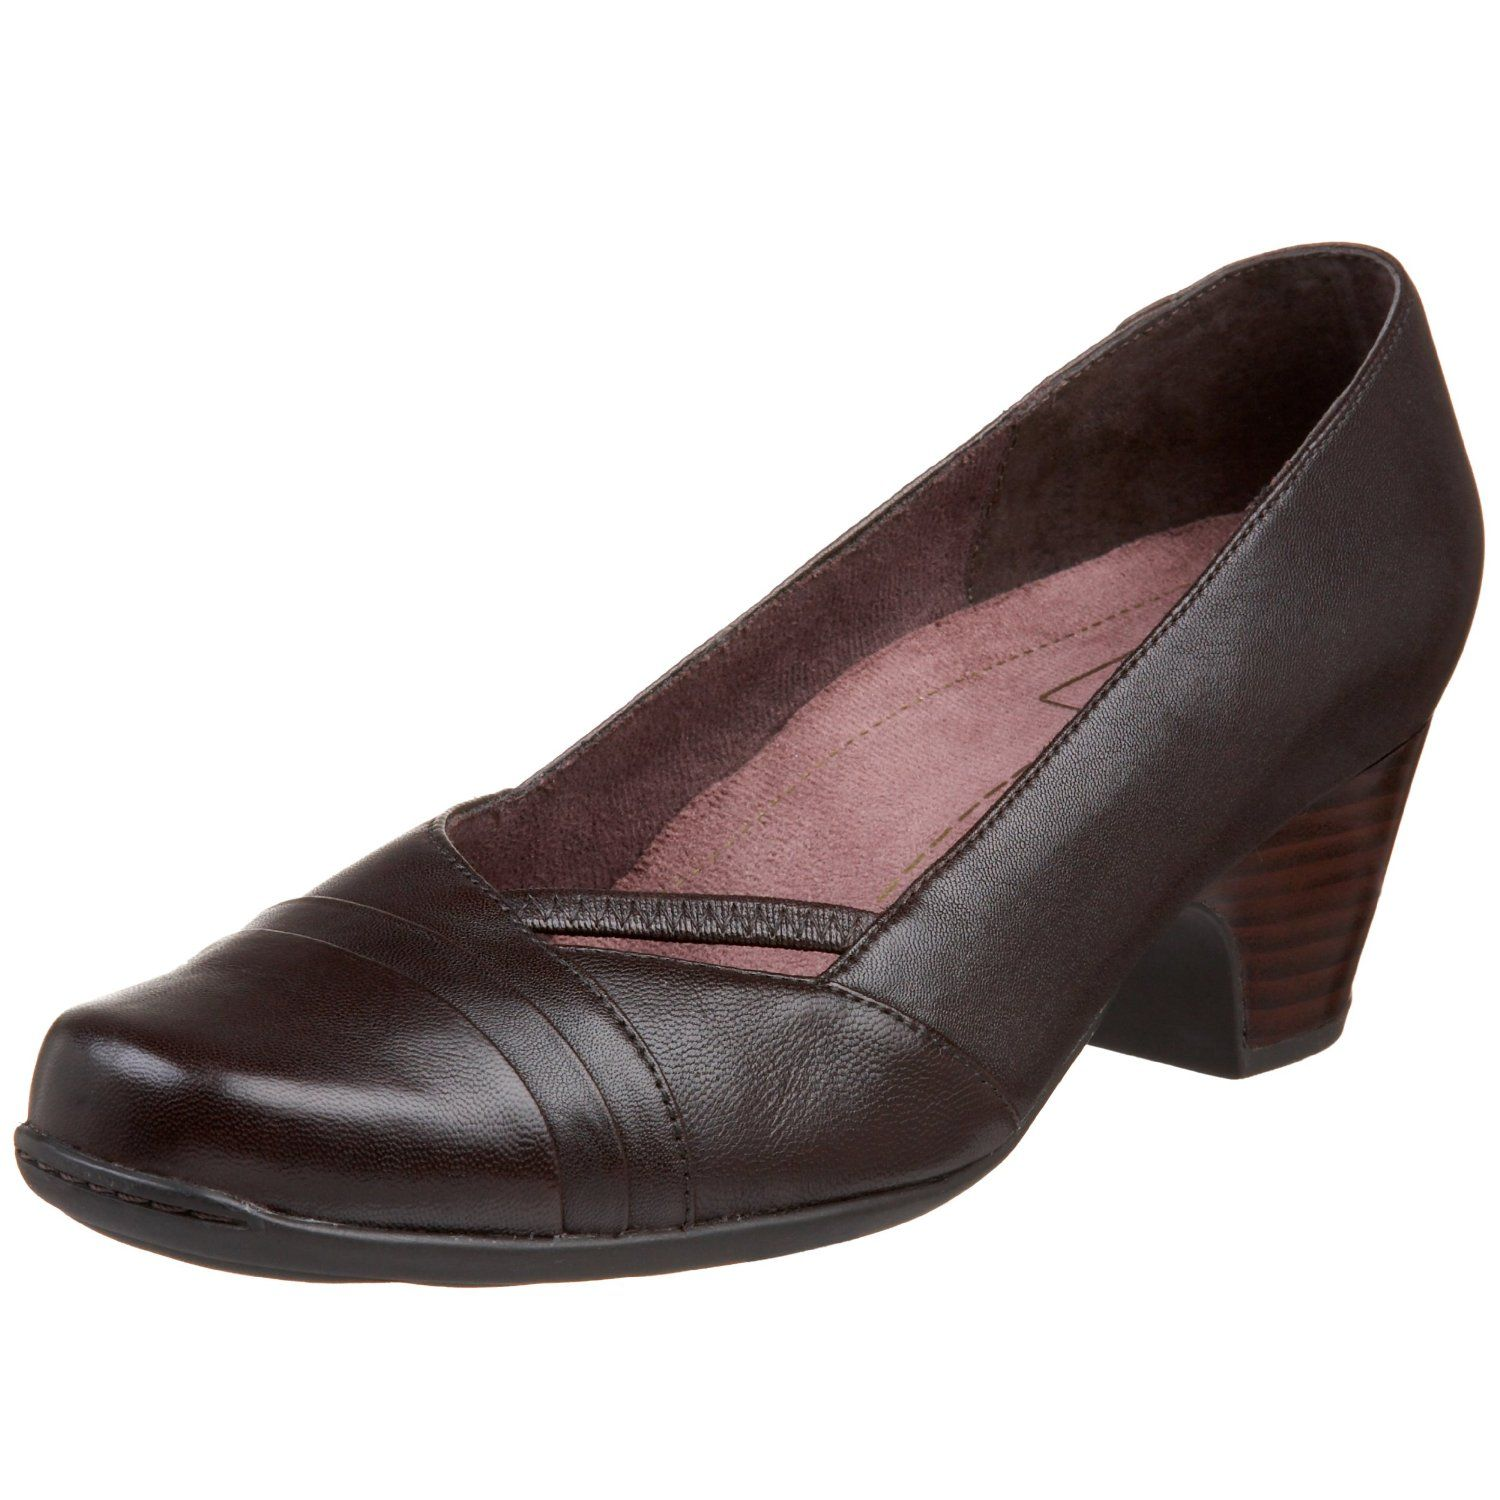 6fc3c4800  110 Amazon.com  Clarks Women s Sugar Sky Pump  Shoes